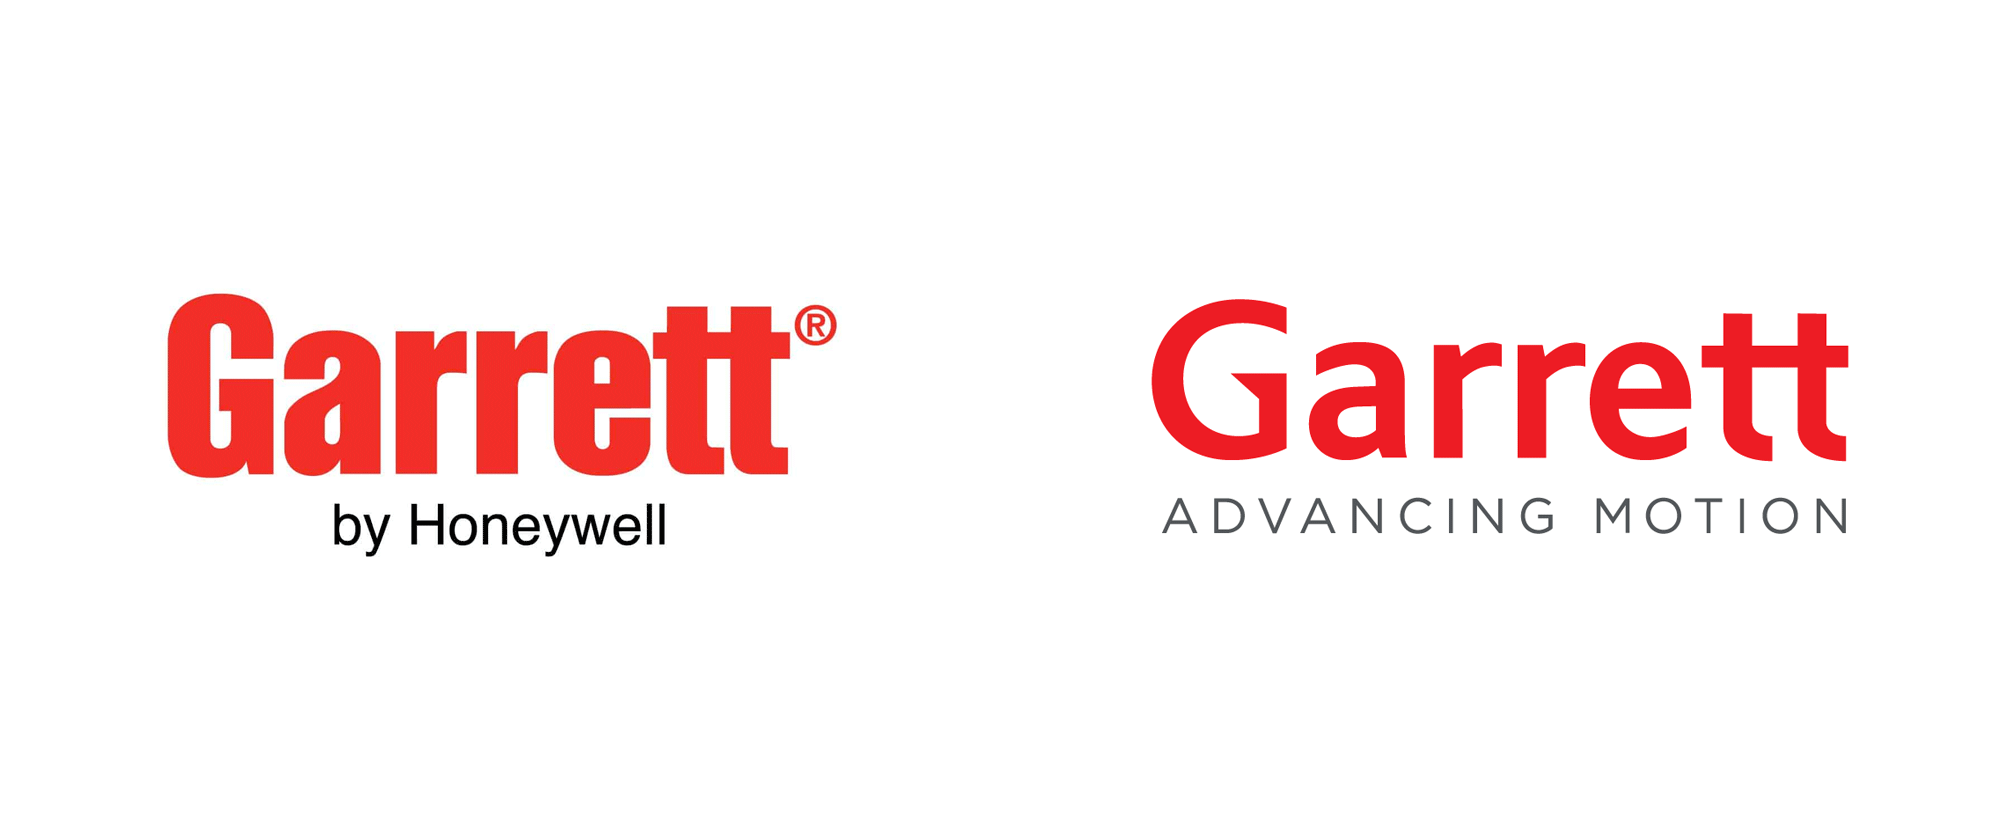 New Name and Logo for Garrett - Advancing Motion